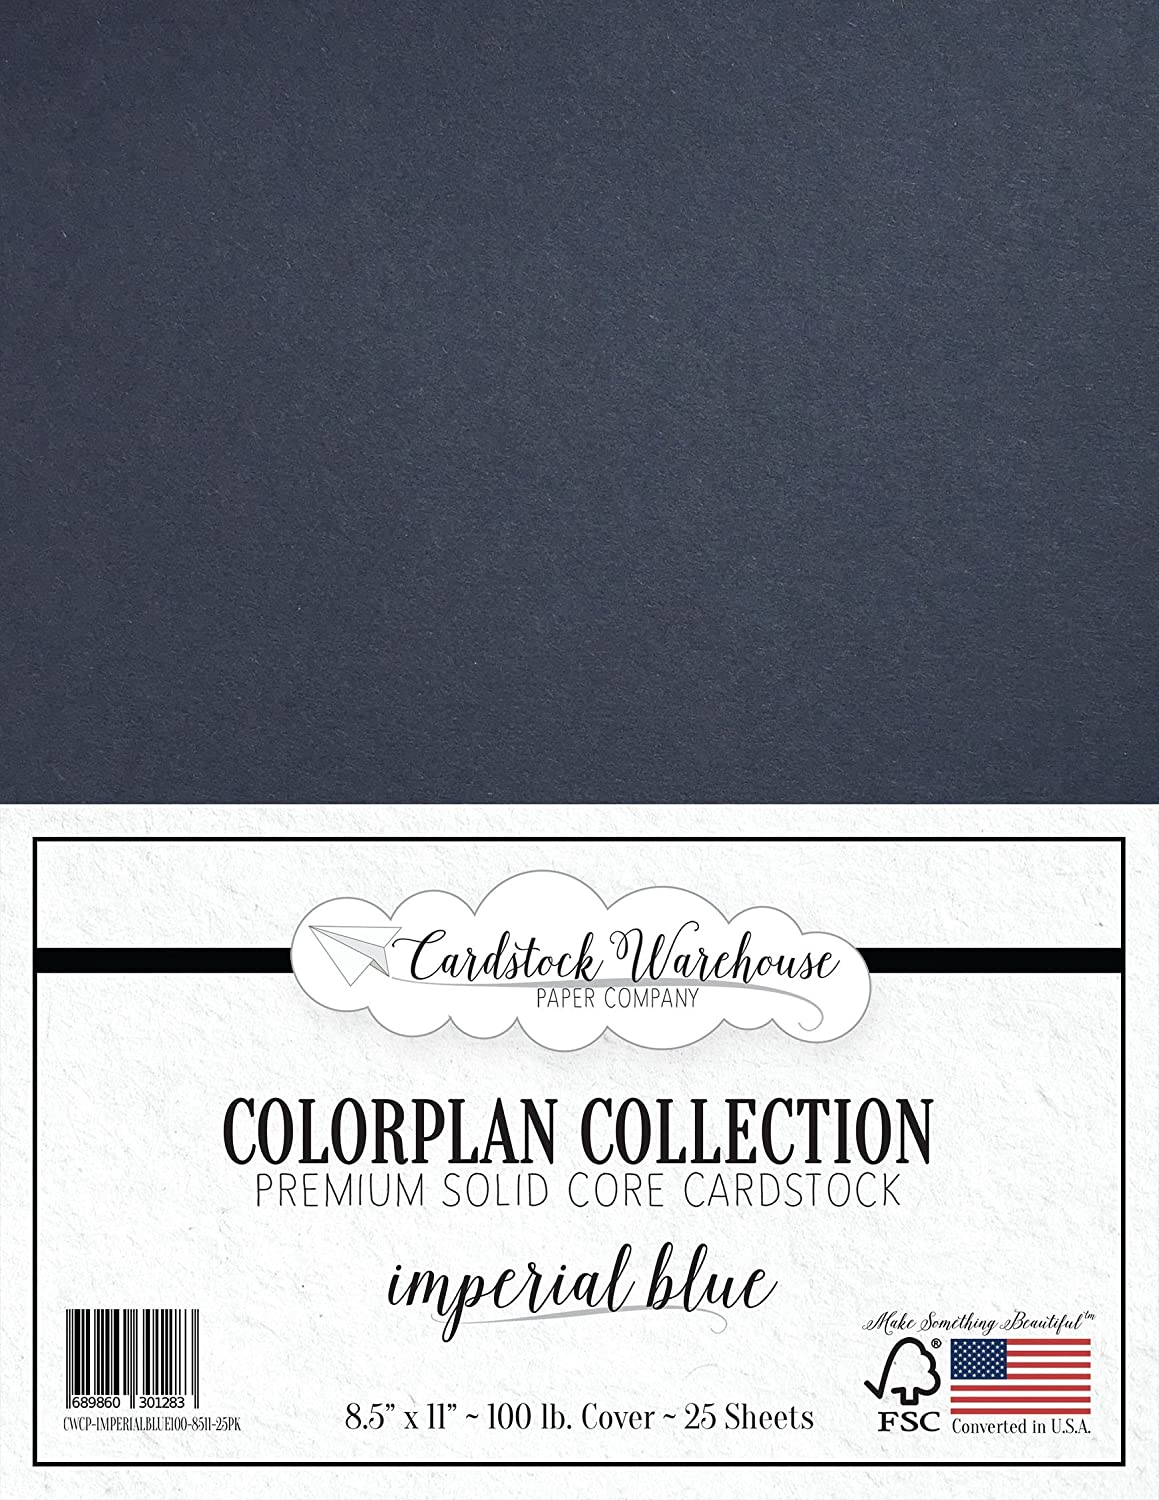 Imperial Blue/Dark Blue Cardstock Paper - 8.5 x 11 inch Premium 100 lb. Cover - 25 Sheets from Cardstock Warehouse